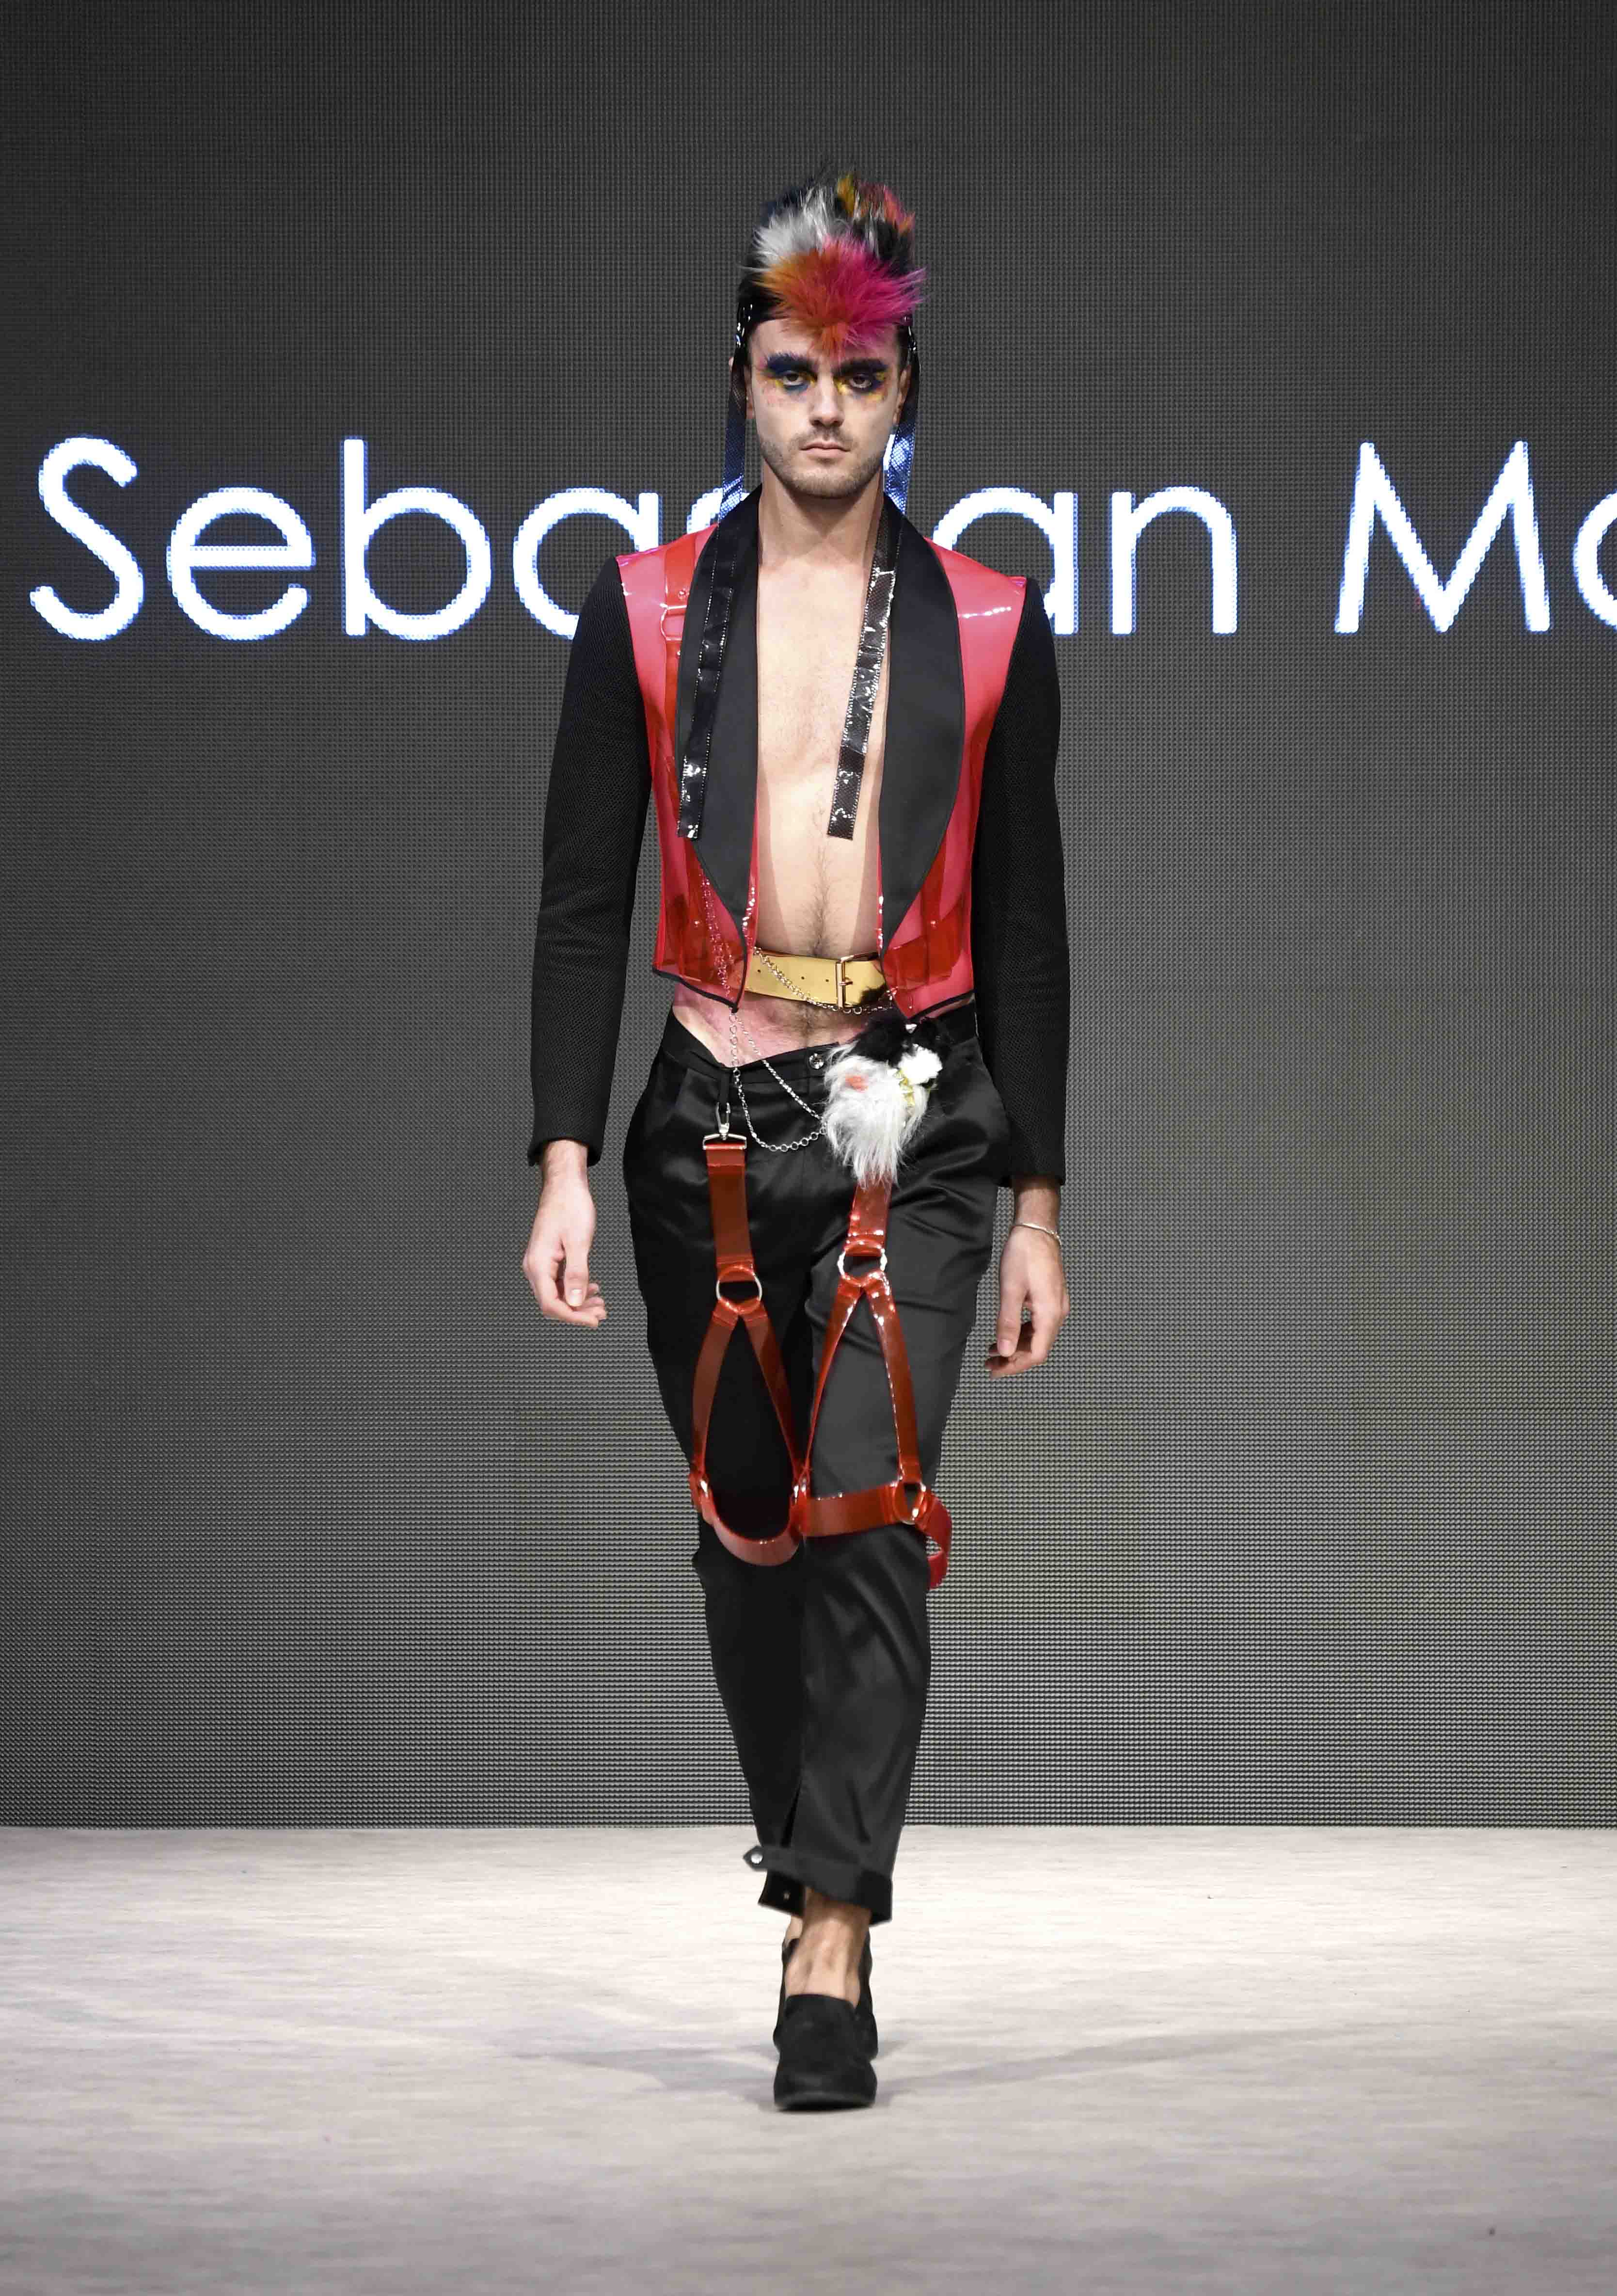 VANCOUVER, BC - SEPTEMBER 17:  A model walks the runway wearing Sebastian Masuda at Vancouver Fashion Week Spring/Summer 19 - Day 1 on September 17, 2018 in Vancouver, Canada.  (Photo by Arun Nevader/Getty Images for VFW Management INC)